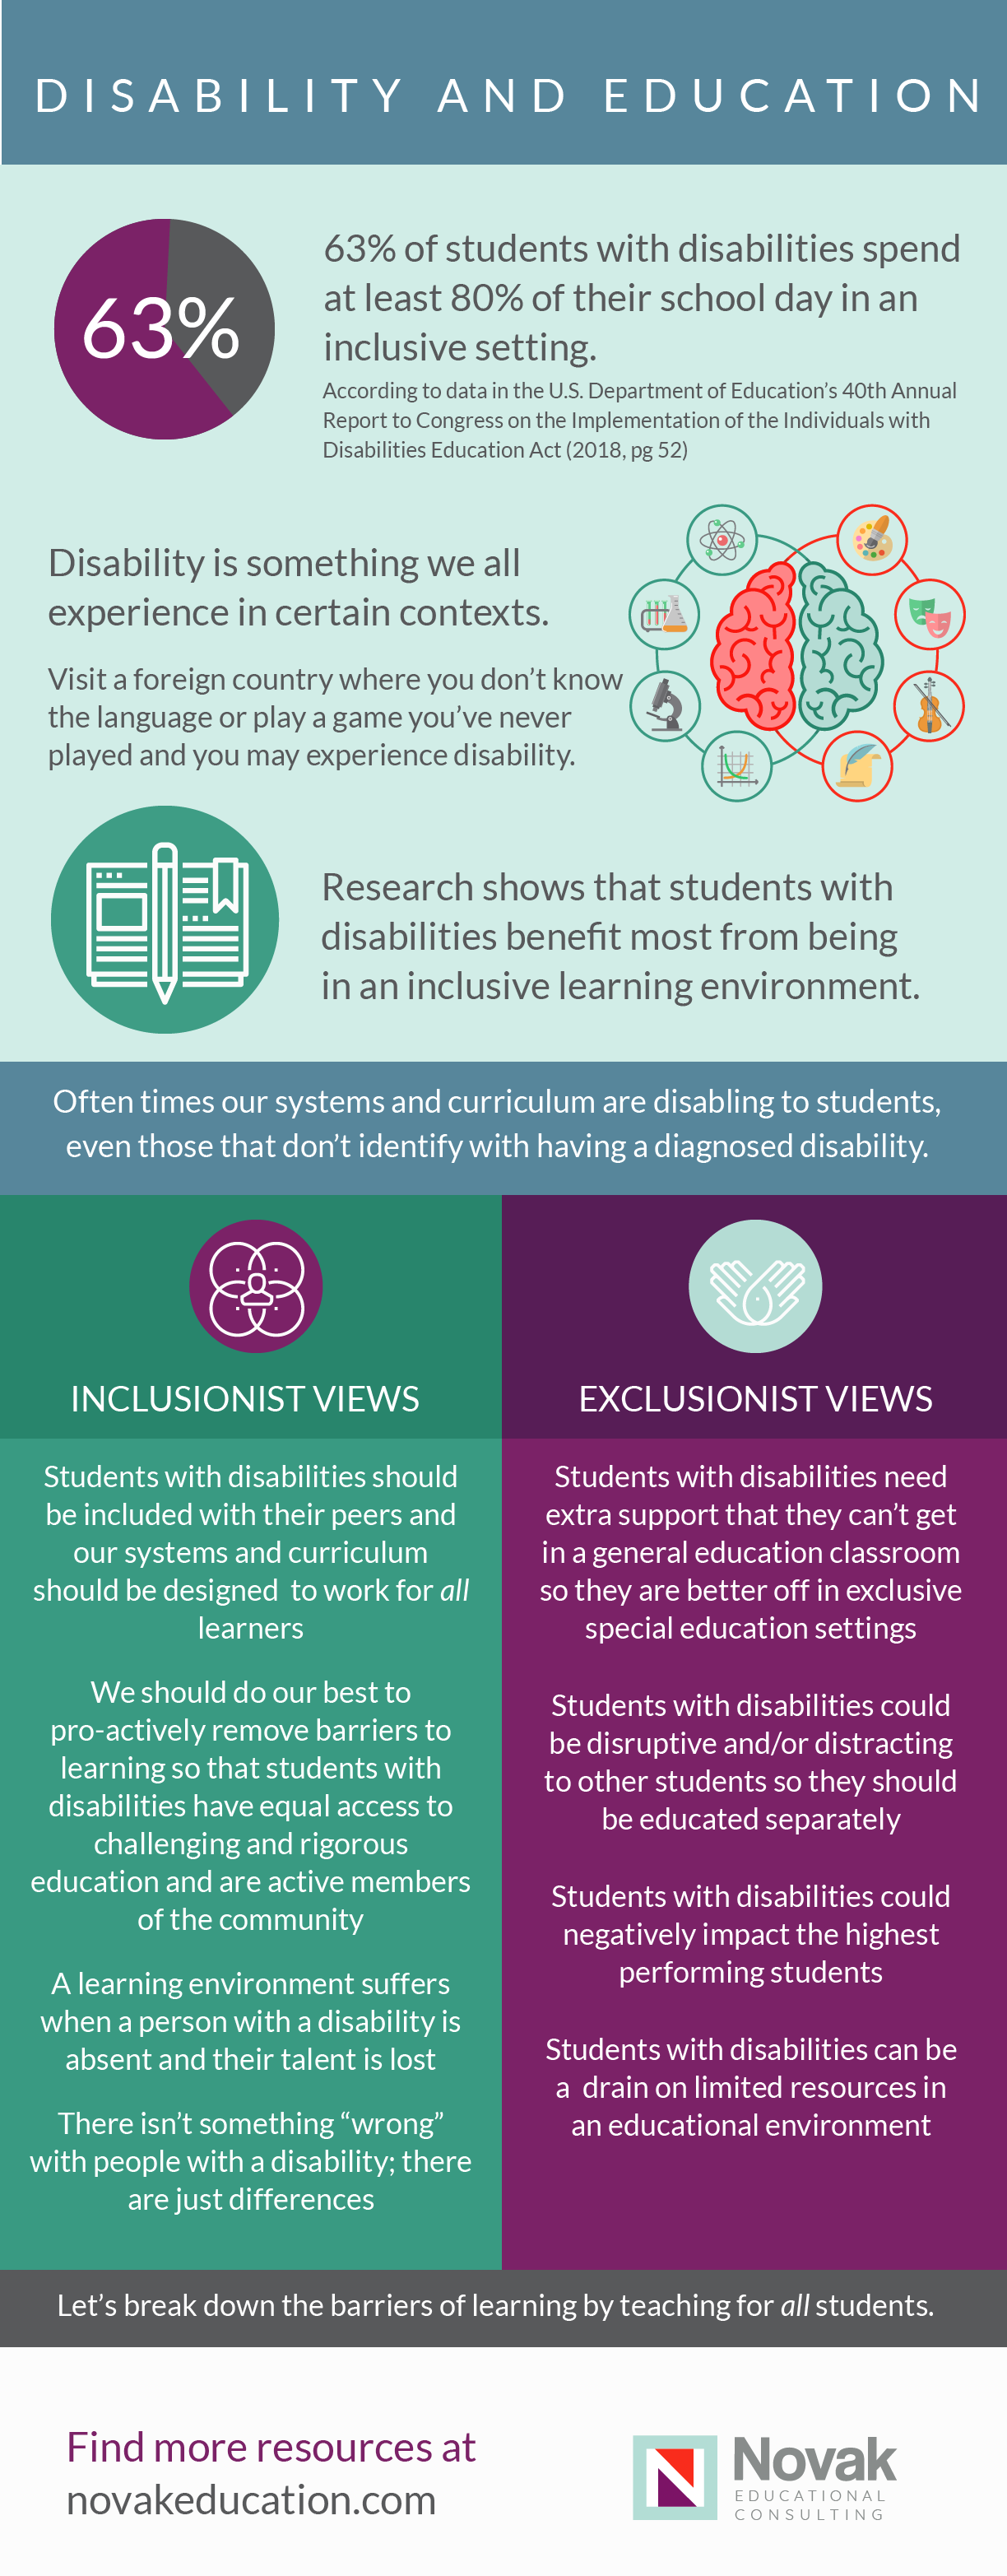 Disability and Education Infographic - Please continue below for descriptive text outlining information contained in this infographic.